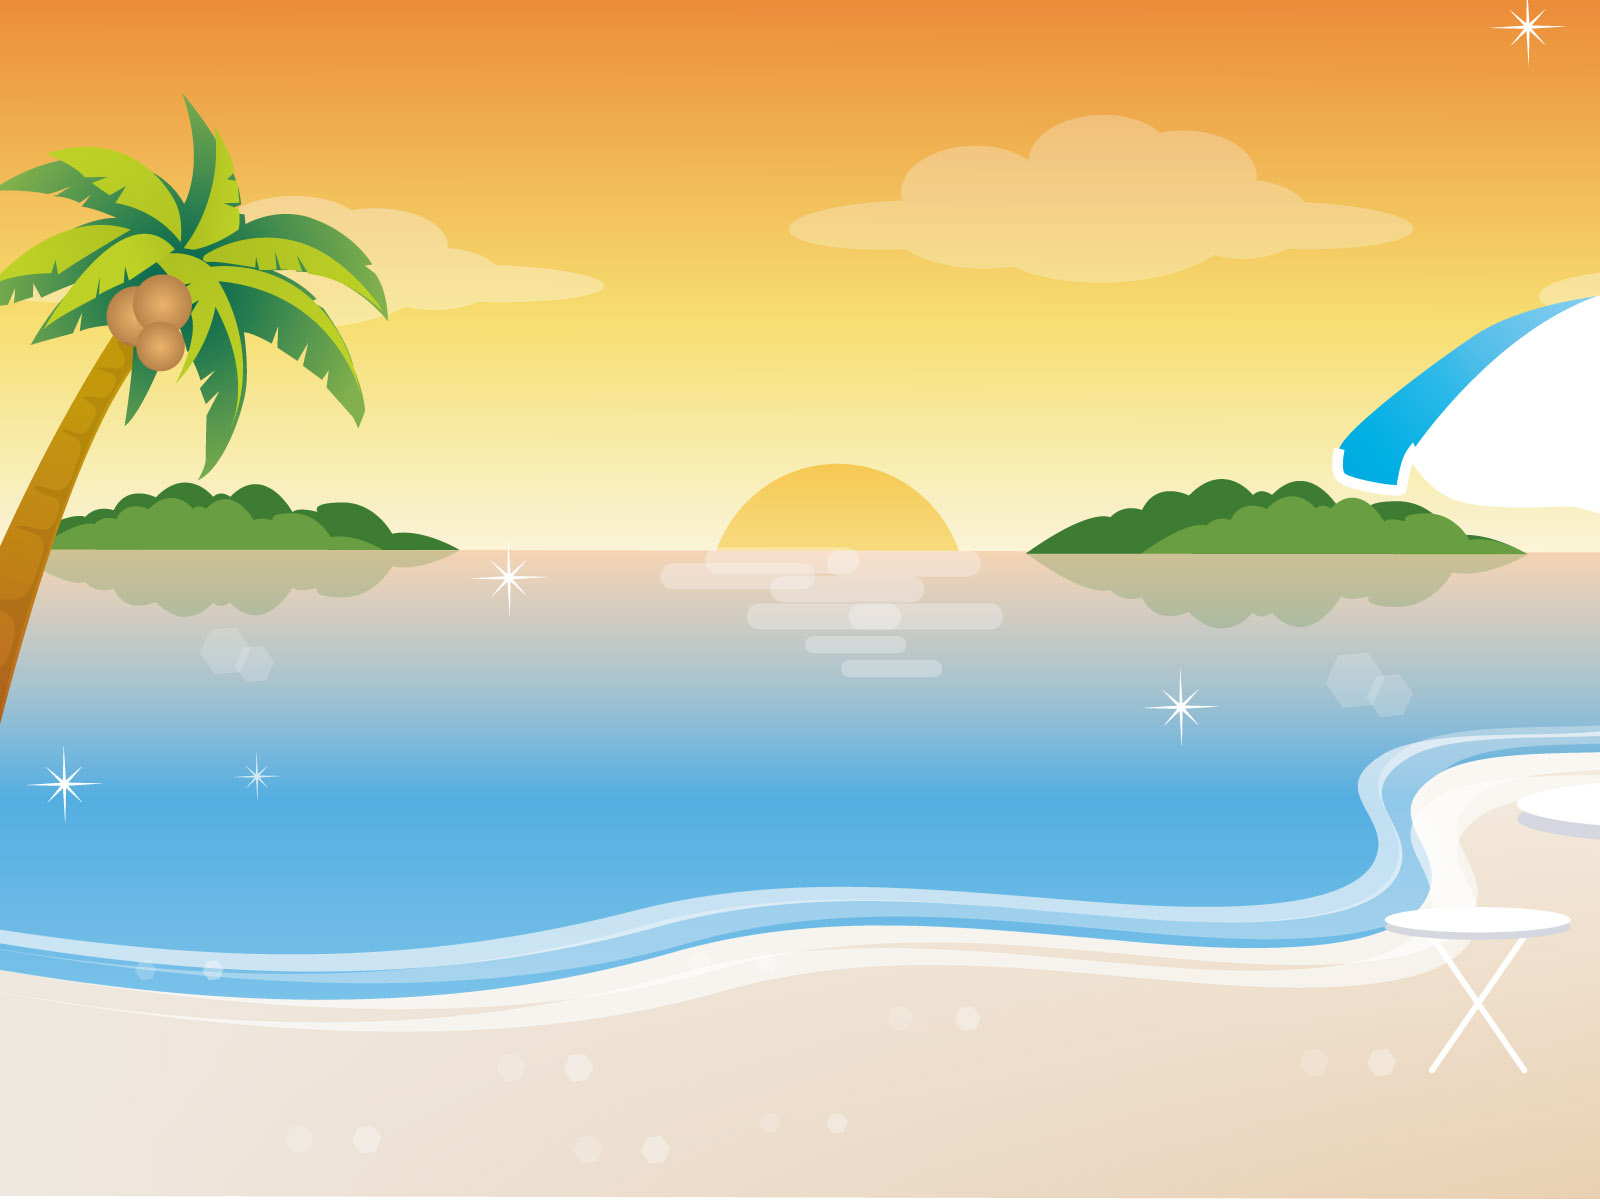 Clipart beach background image royalty free Free Beach Cliparts Backgrounds, Download Free Clip Art, Free Clip ... image royalty free